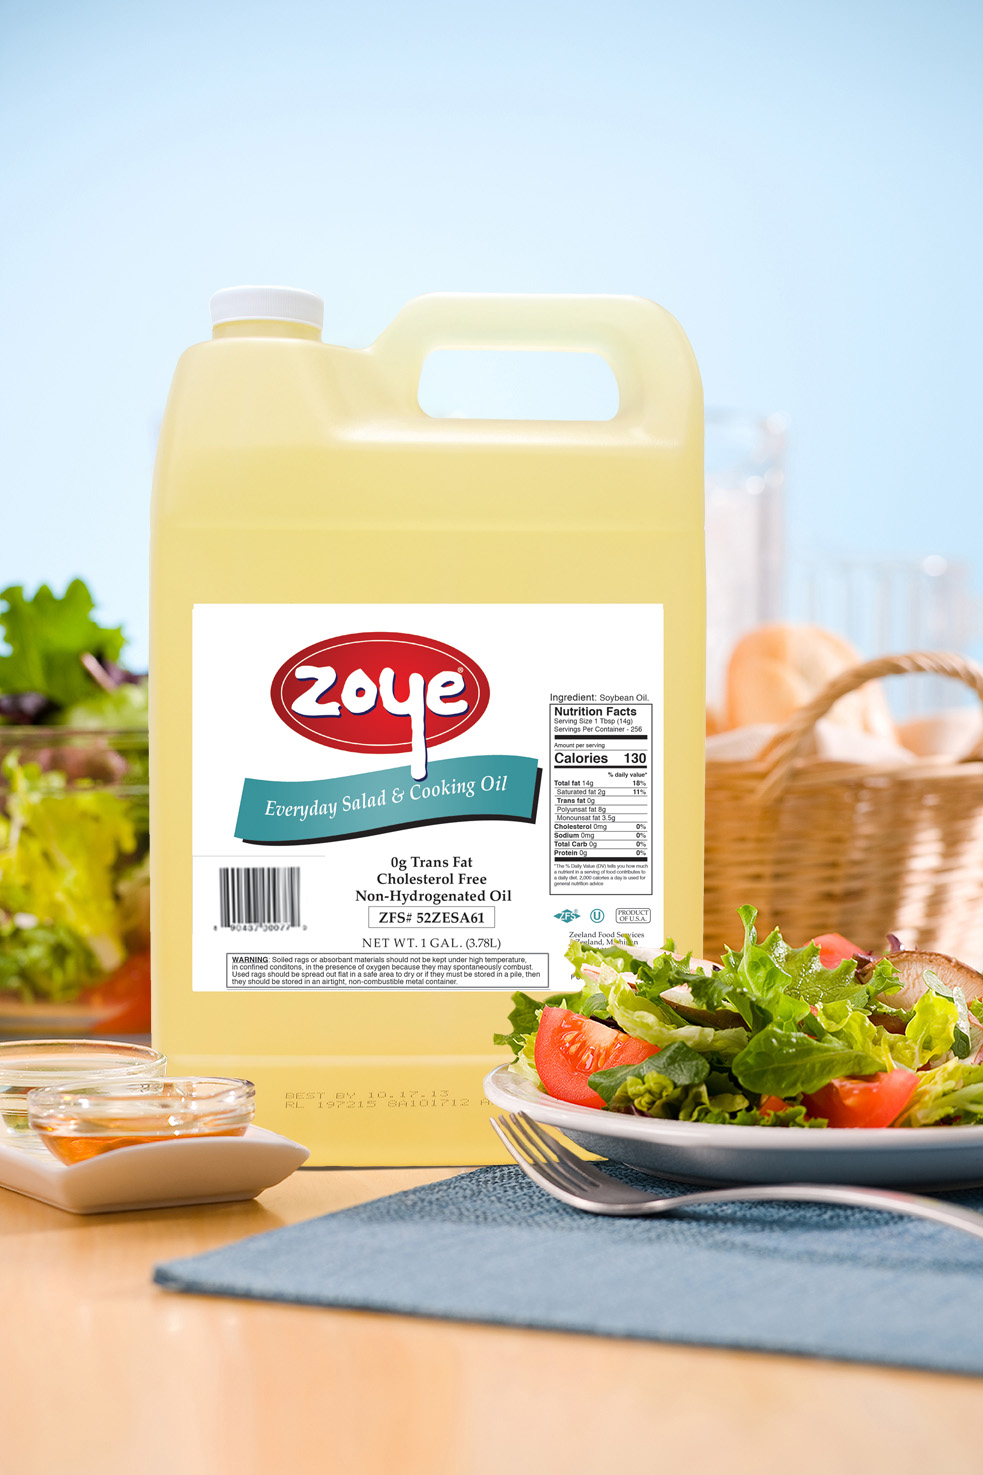 Zoye Everyday Salad & Cooking Oil with salads